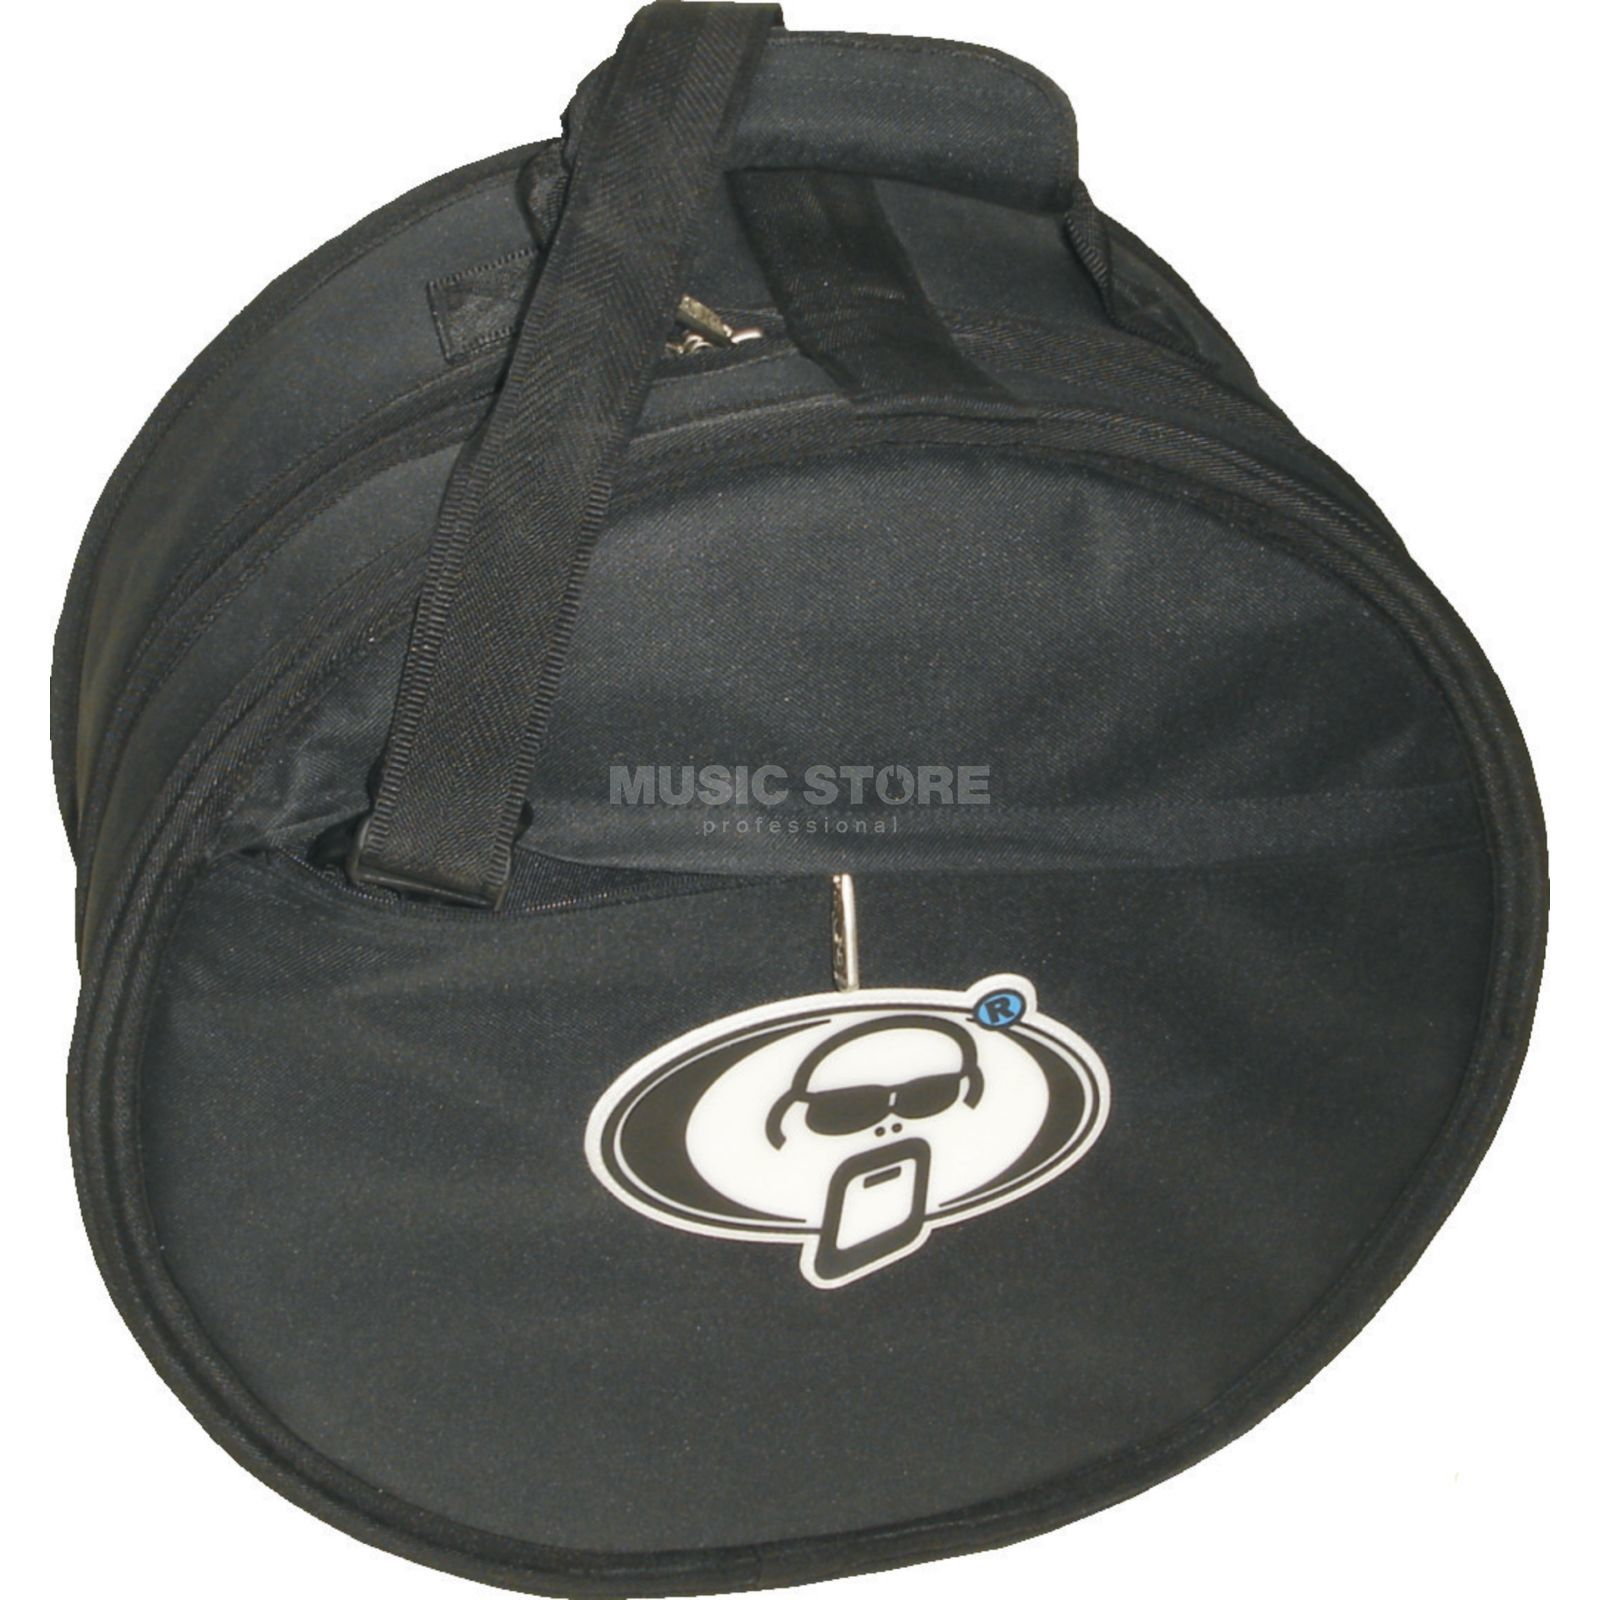 "Protection Racket Snare Bag 3006CS, 14""x6,5"", w/Shoulder Strap Produktbillede"